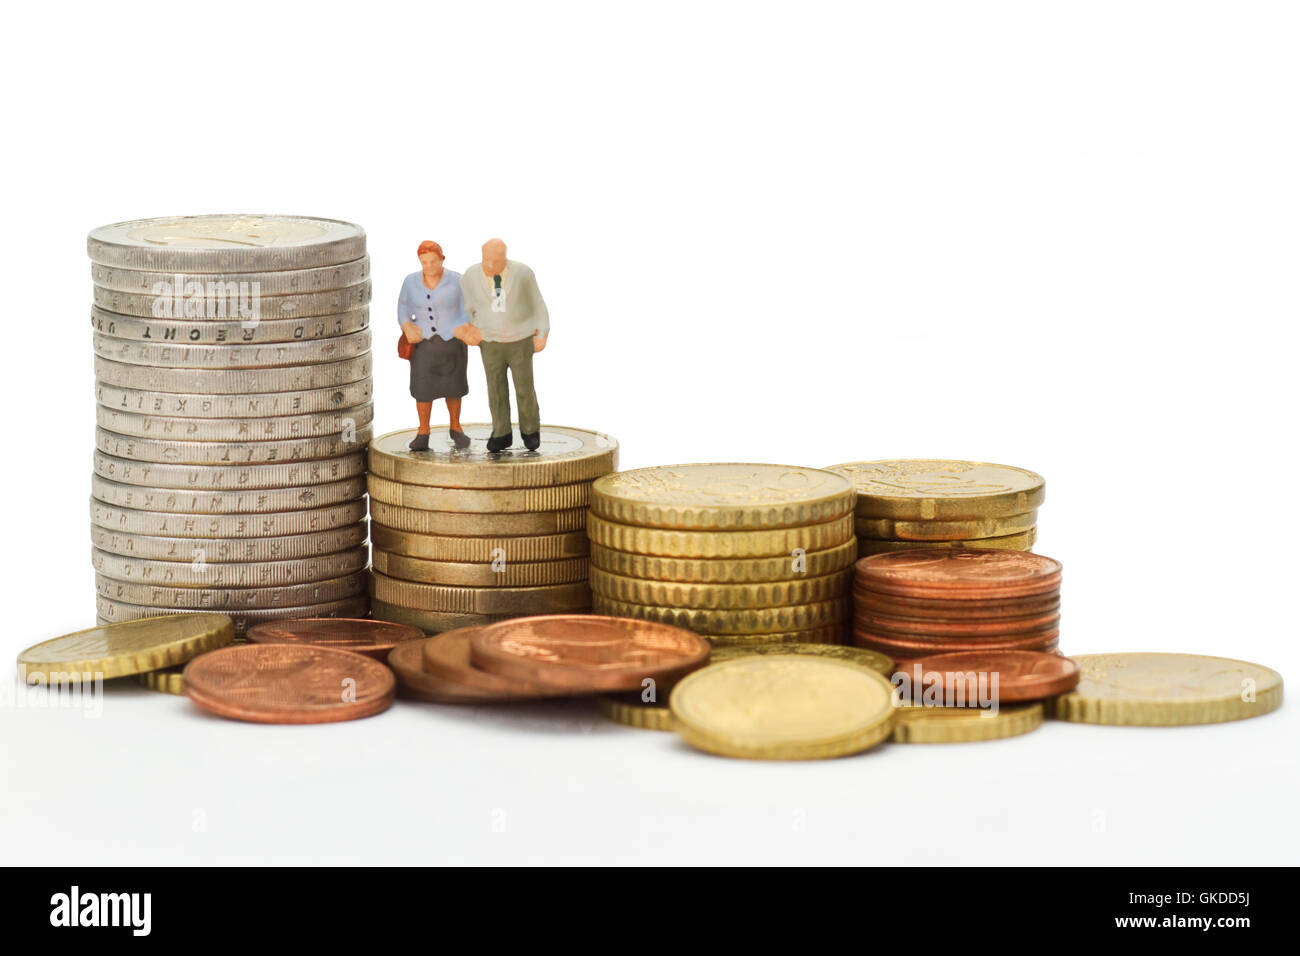 cost of living - Stock Image